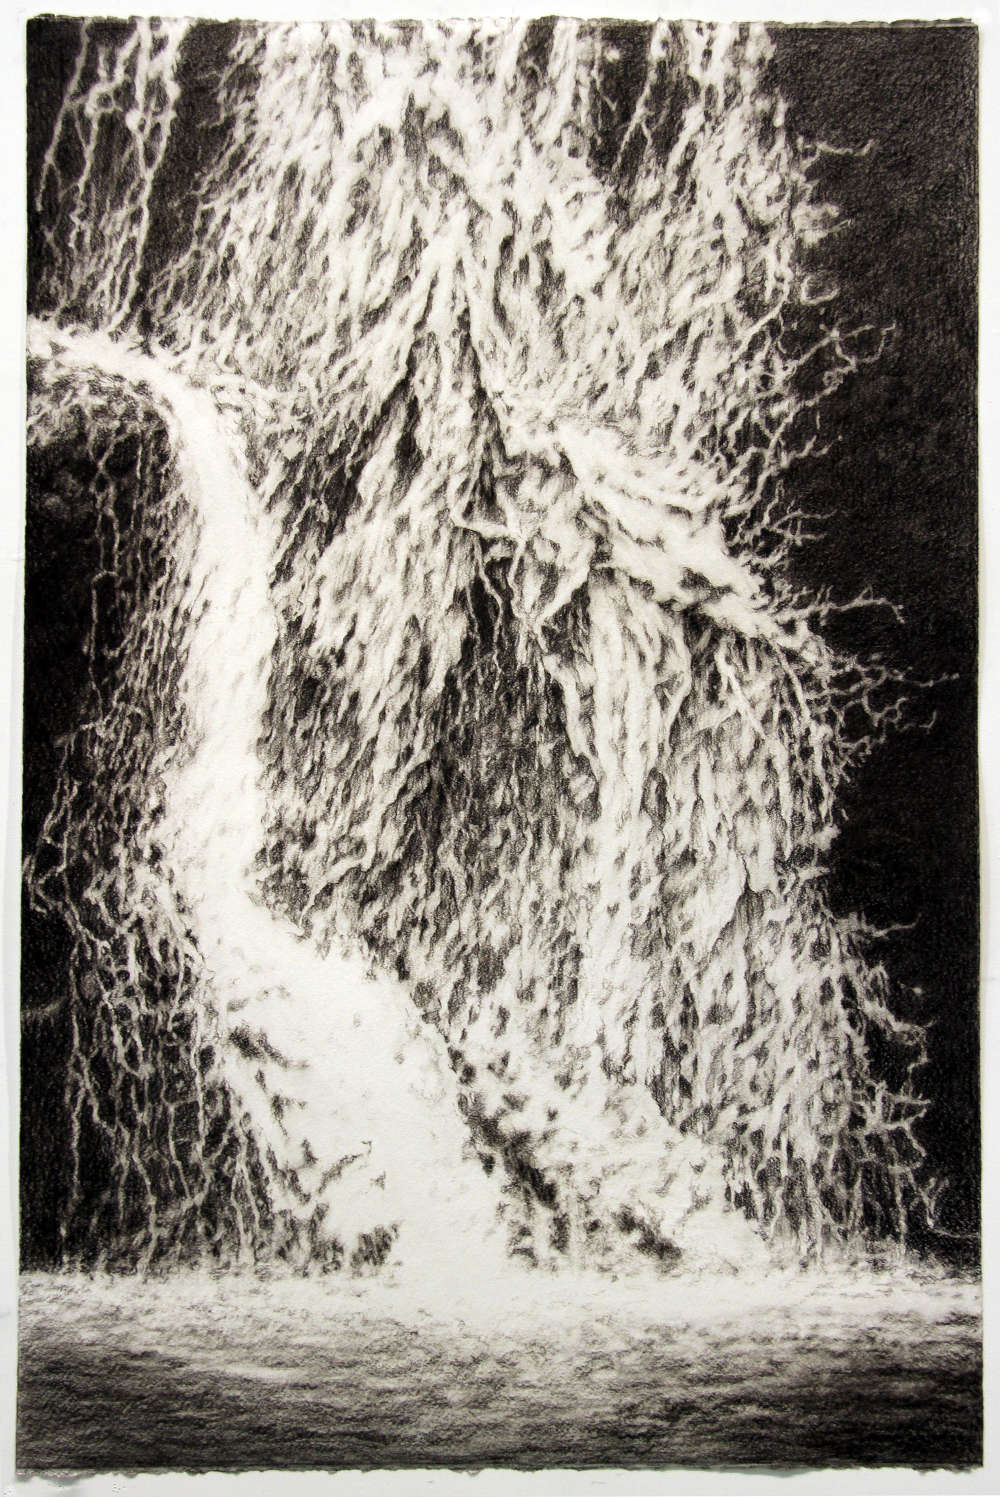 Andrew Browne,  Study for Spill #4, 2018. Charcoal on paper 80.2 x 121 cm